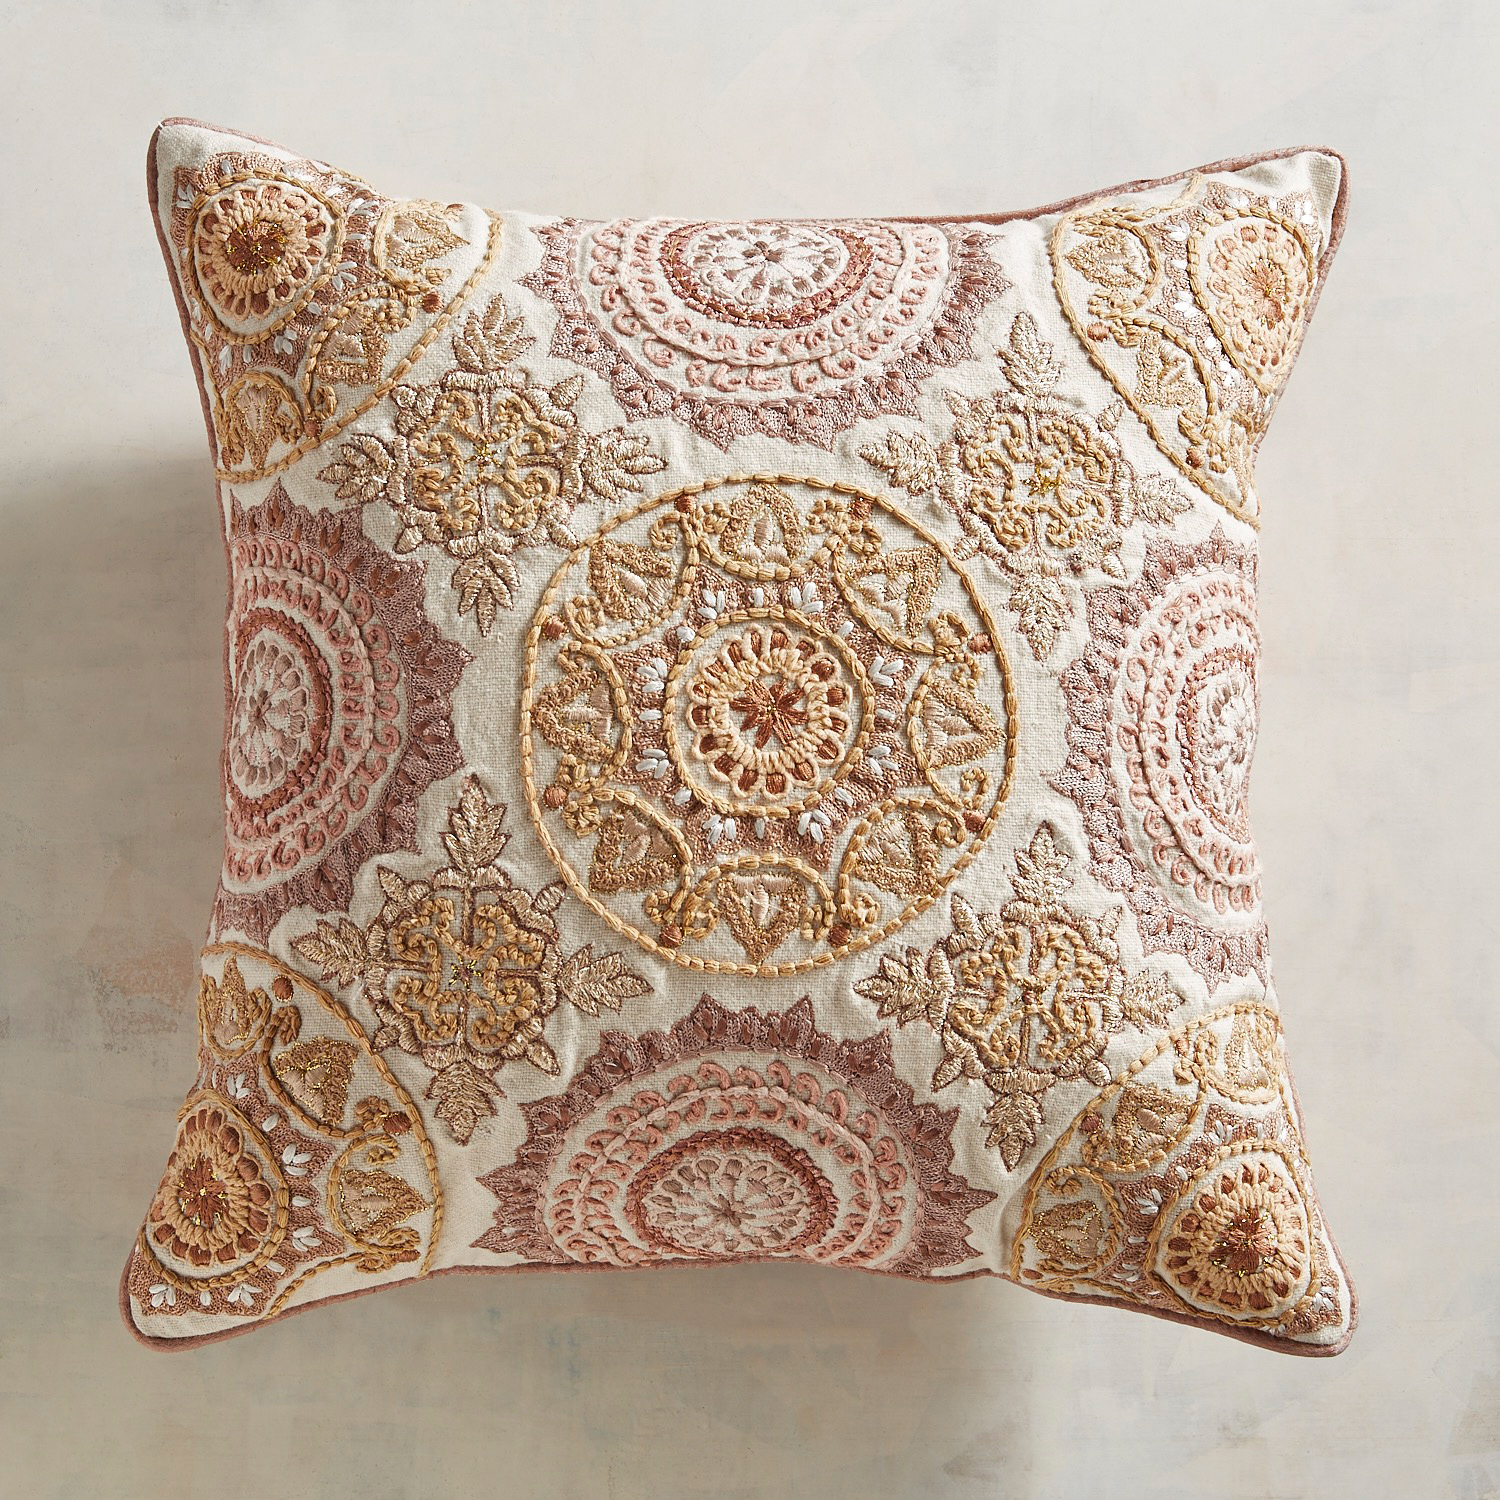 Embroidered Blush Medallions Pillow